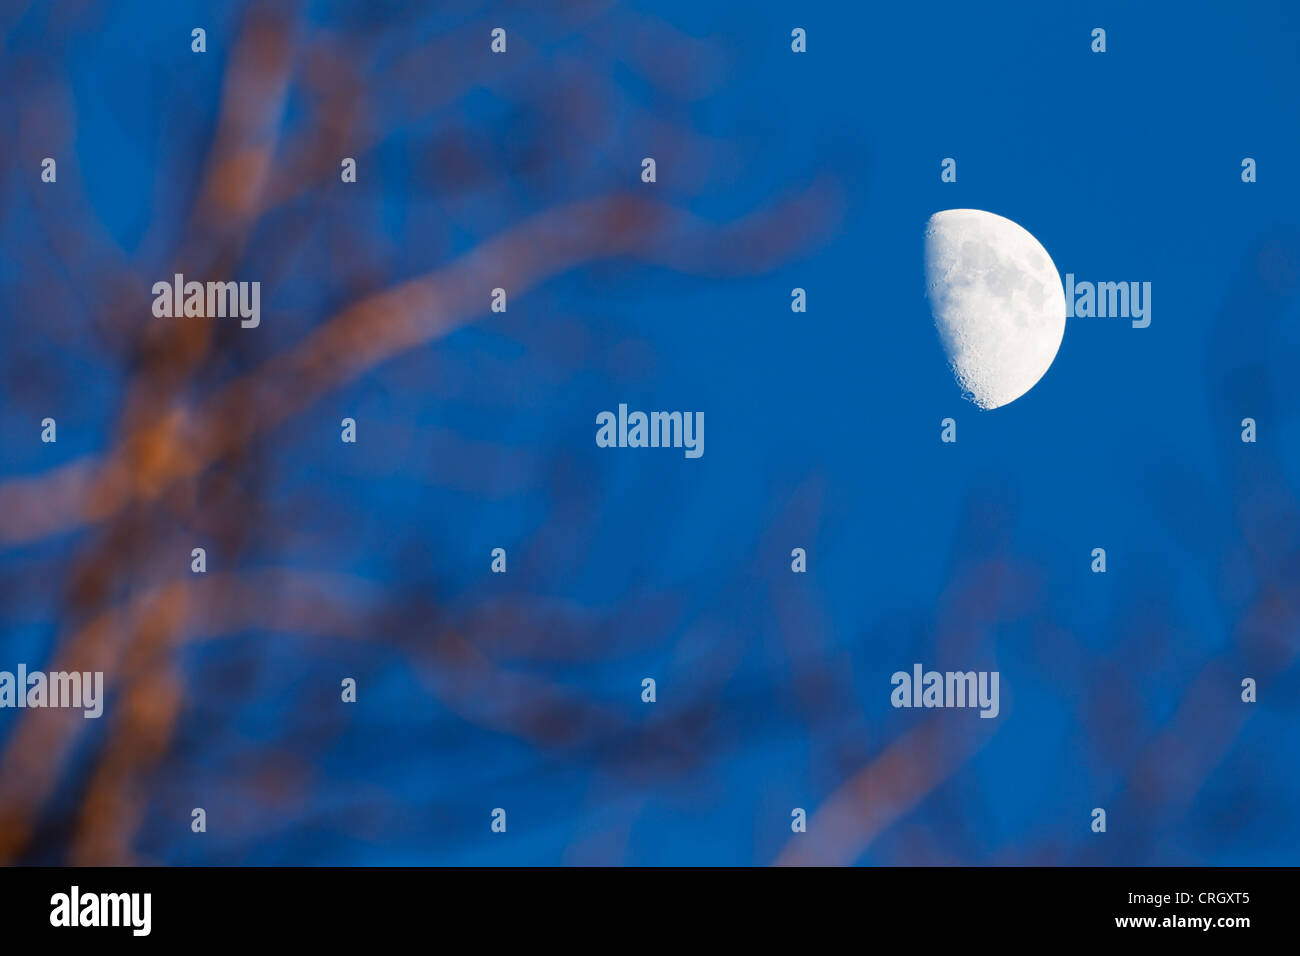 Super telephoto view of half moon through some bare forest tree branches. - Stock Image